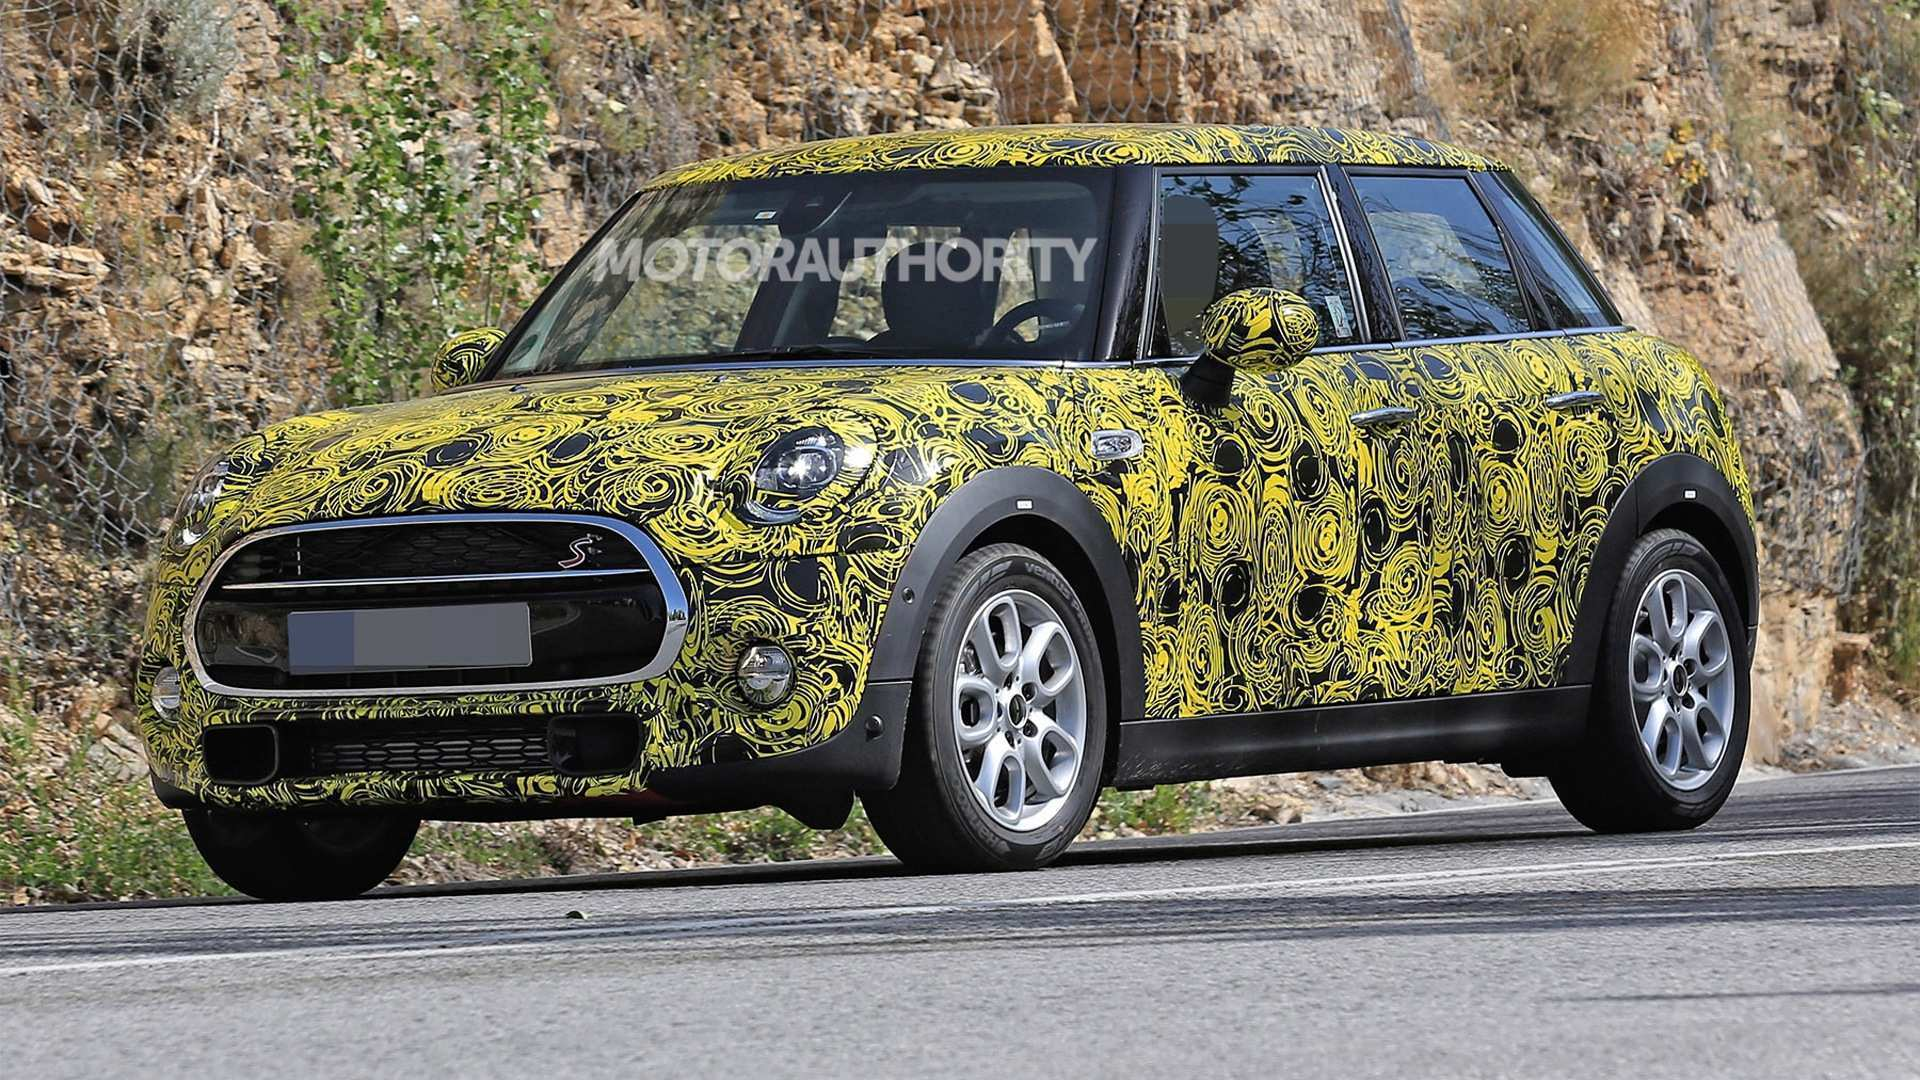 55 All New 2019 Mini Cooper Spy Shots Exterior with 2019 Mini Cooper Spy Shots